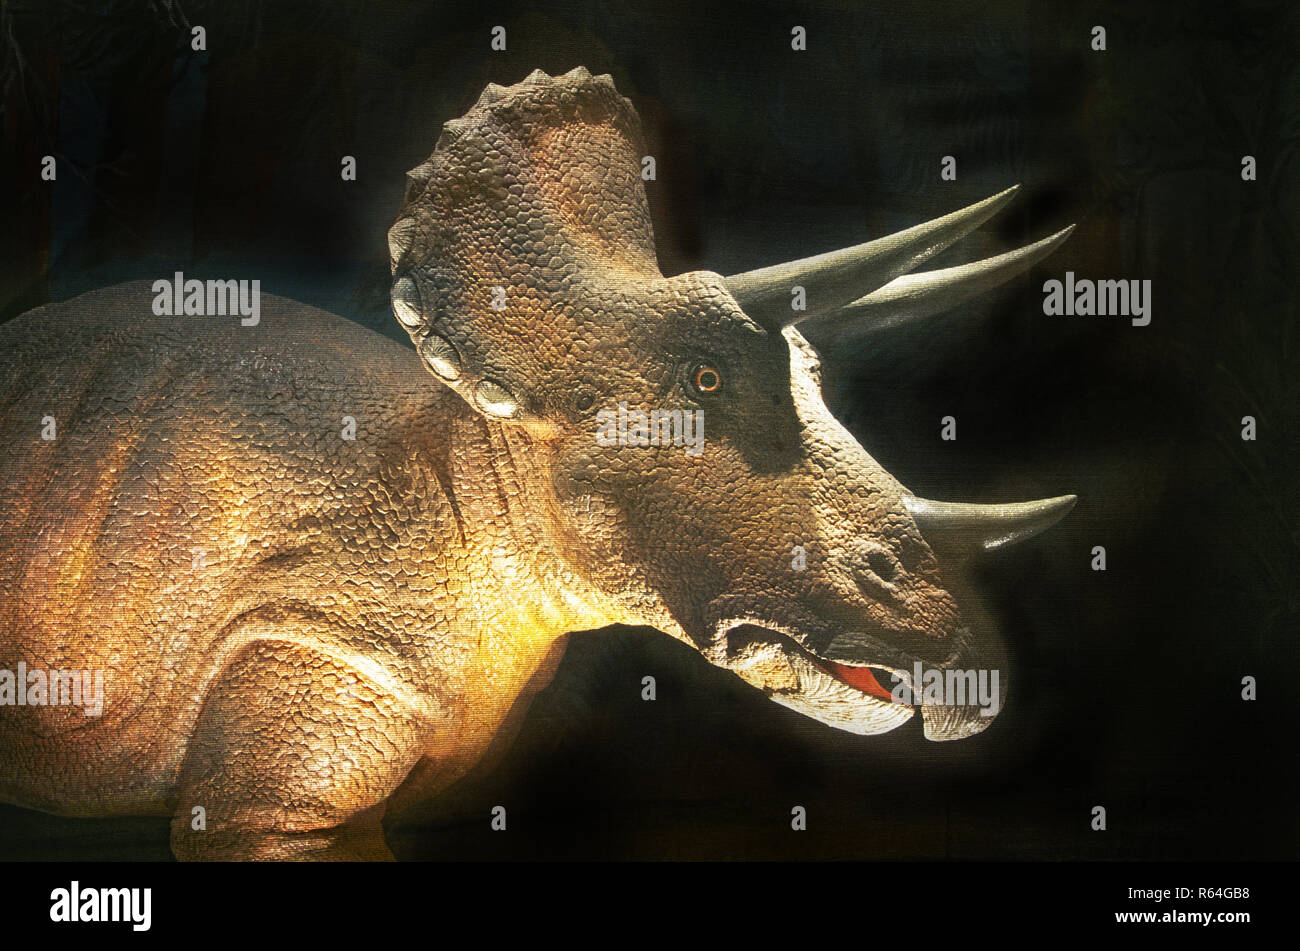 Portrait of a Triceratops, a genus of North American herbivorous ceratopsid dinosaur that existed during the late Maastrichtian stage of the late Cret - Stock Image